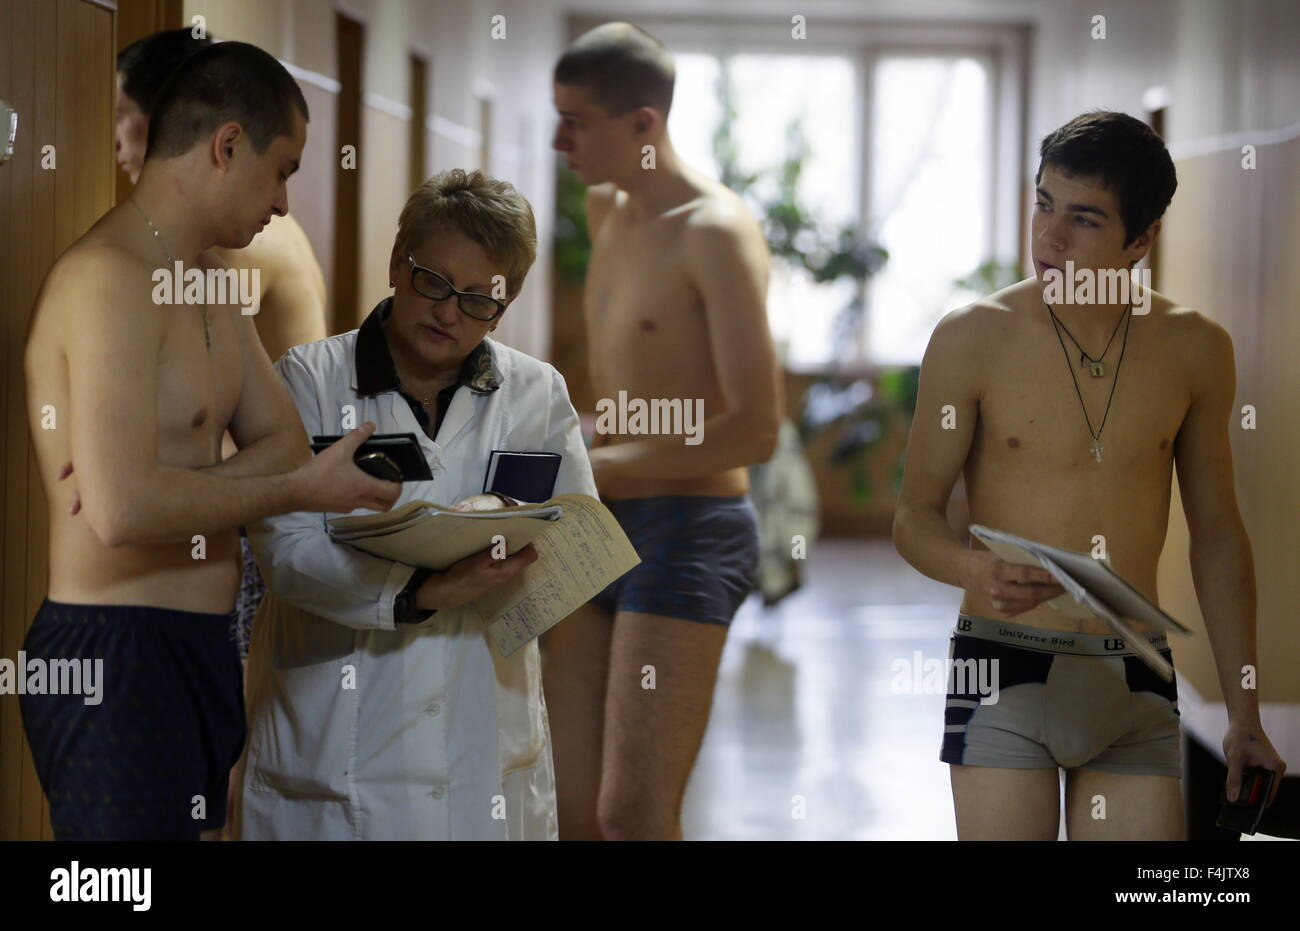 medical examination of nude